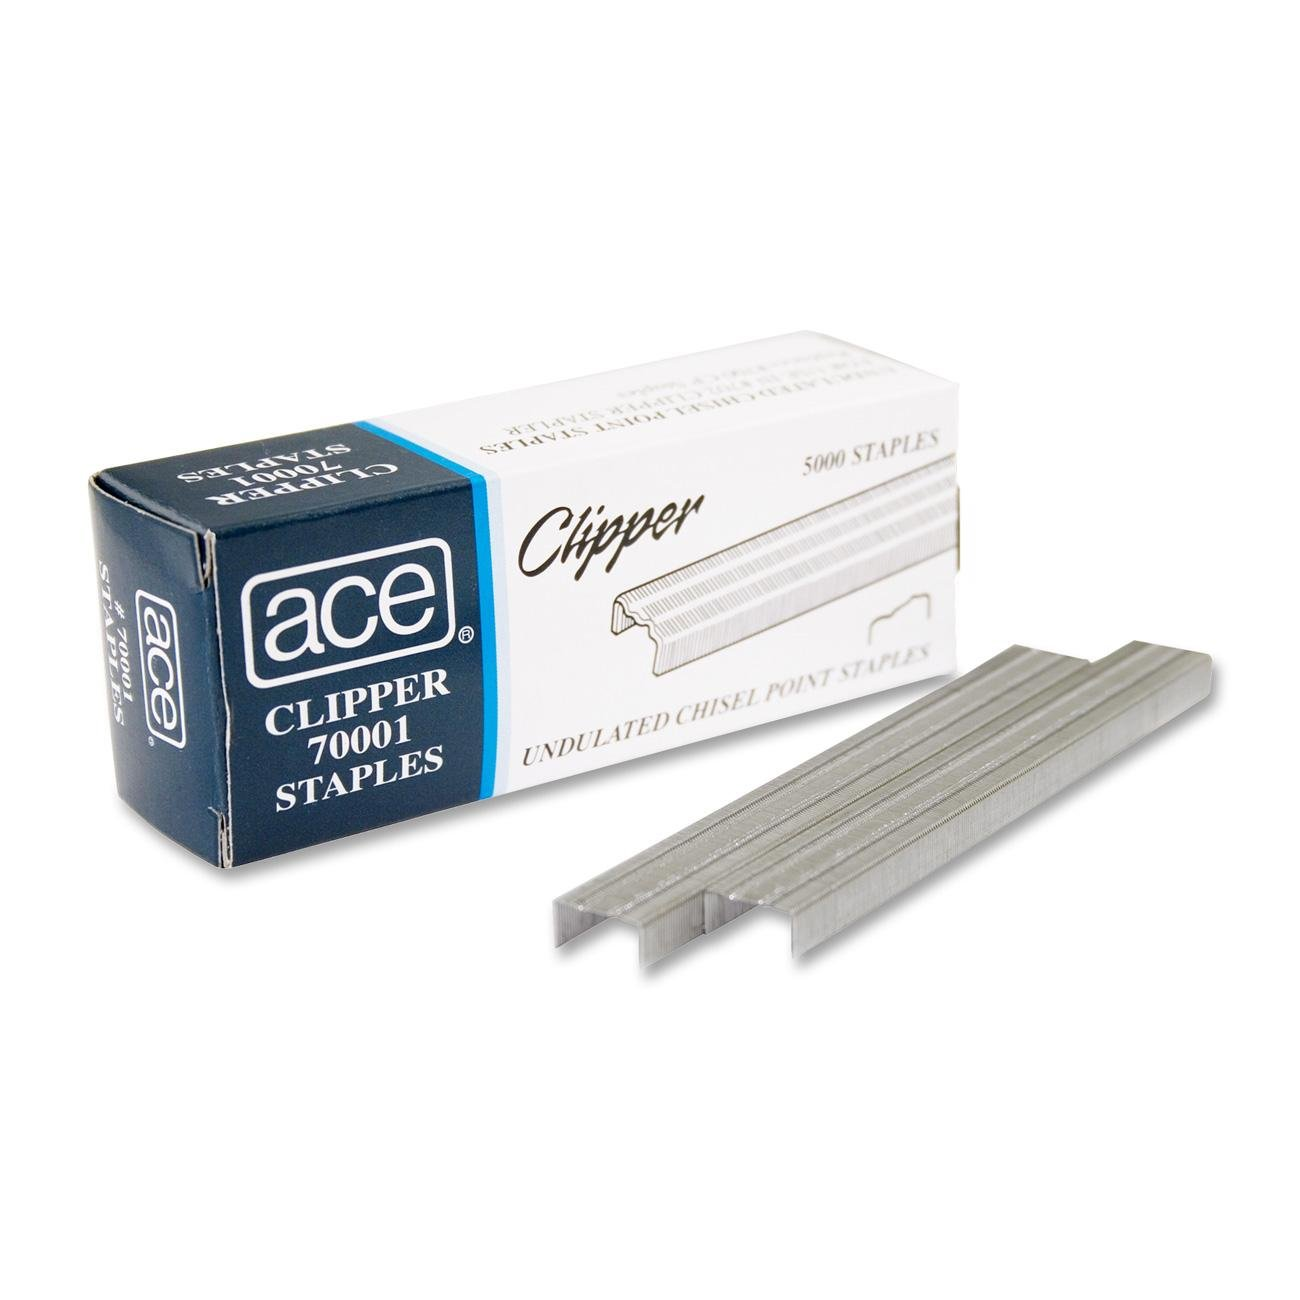 ACE-70001 Undulated Staples 1 Sleeve = 20 Boxes, 5000 staples per box by ACE